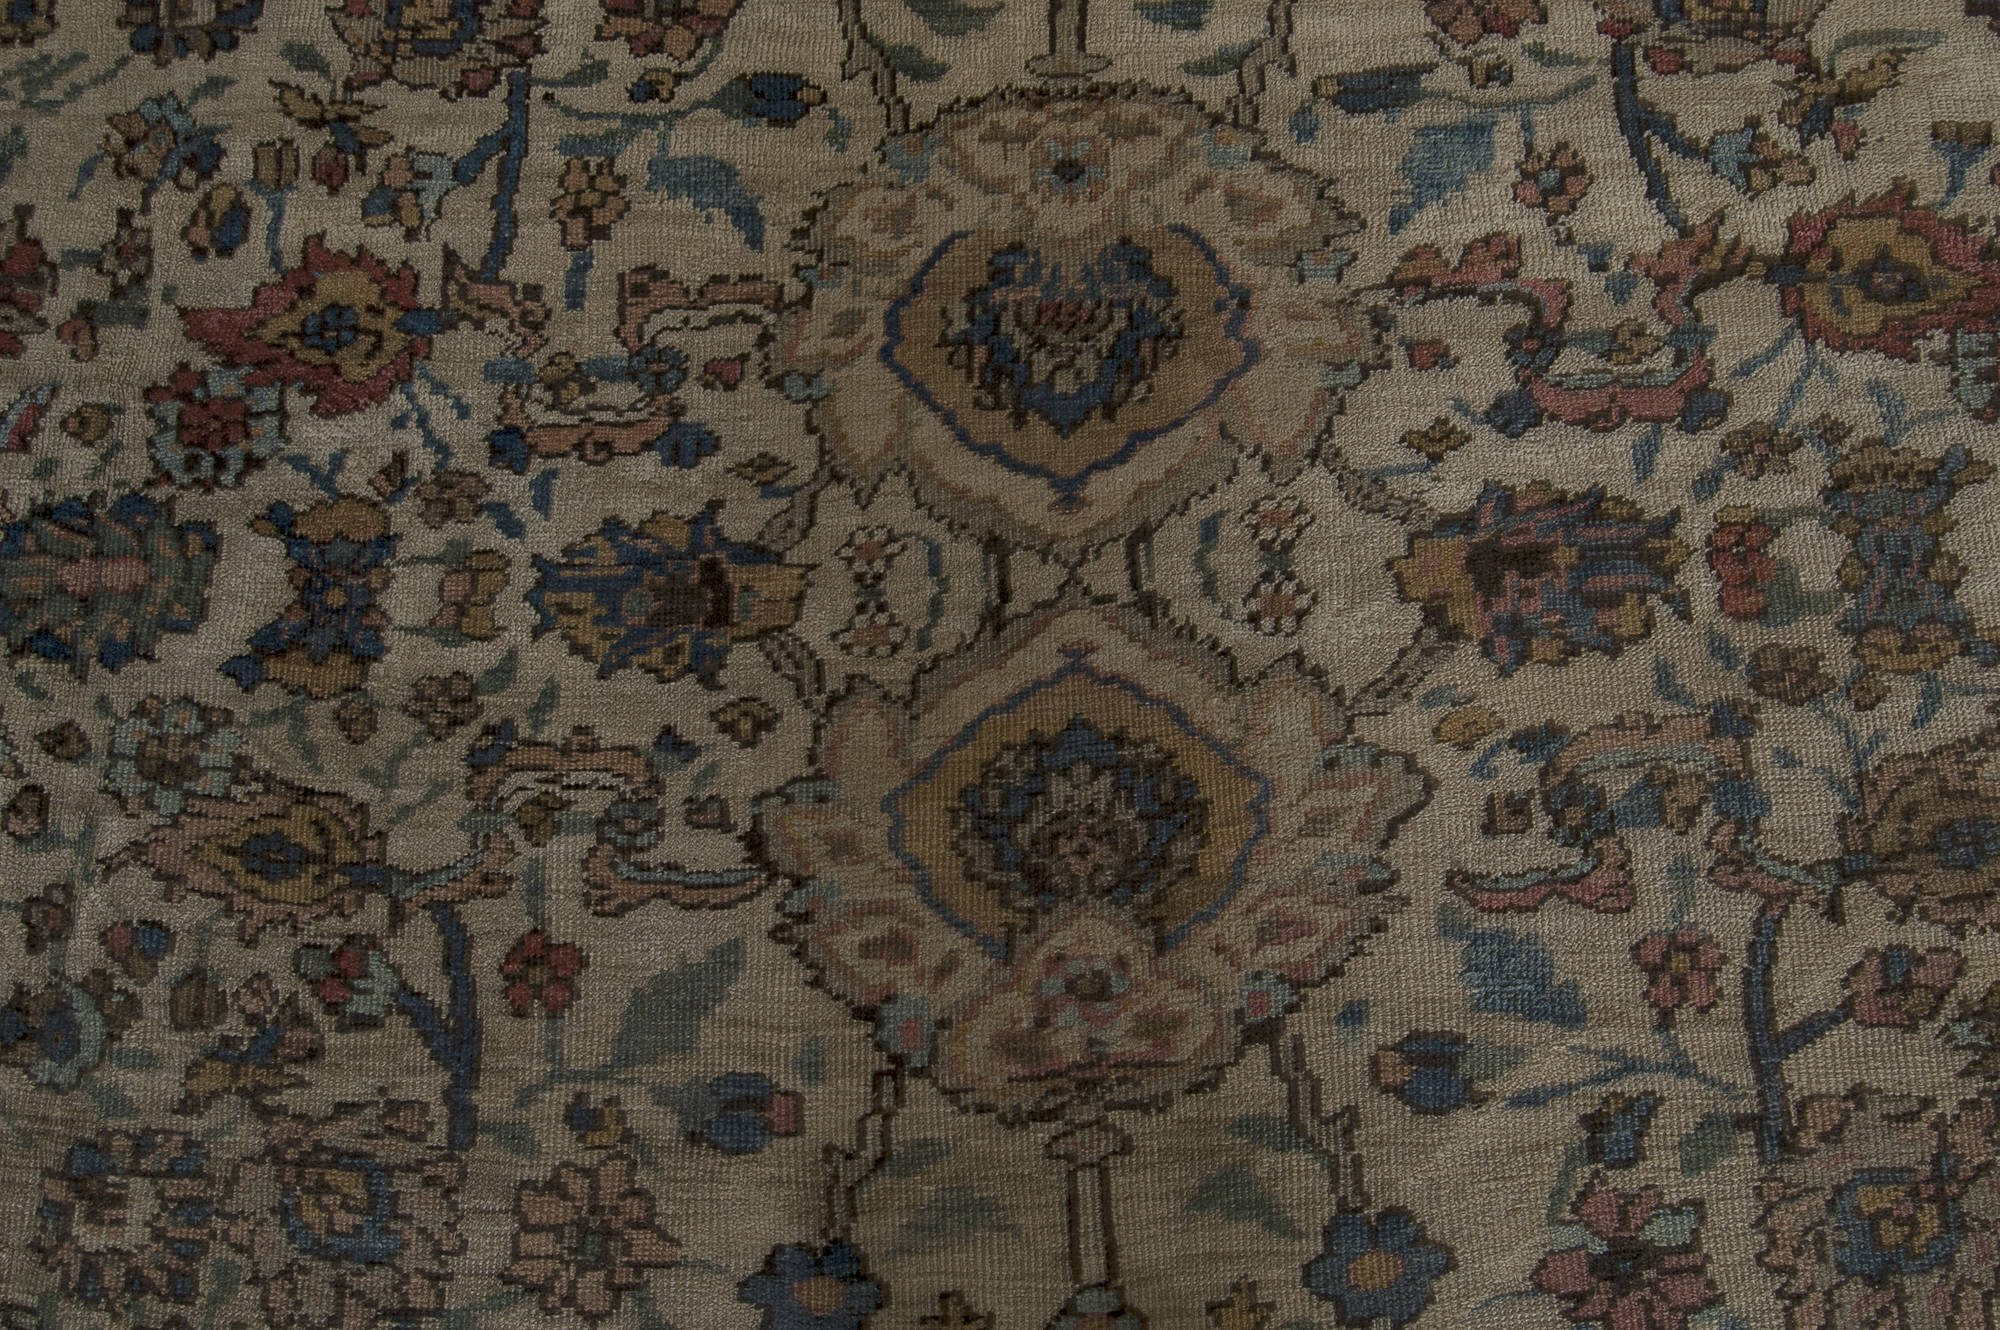 Antique Persian Sultanabad Botanic Colorful Handwoven Wool Rug BB4605